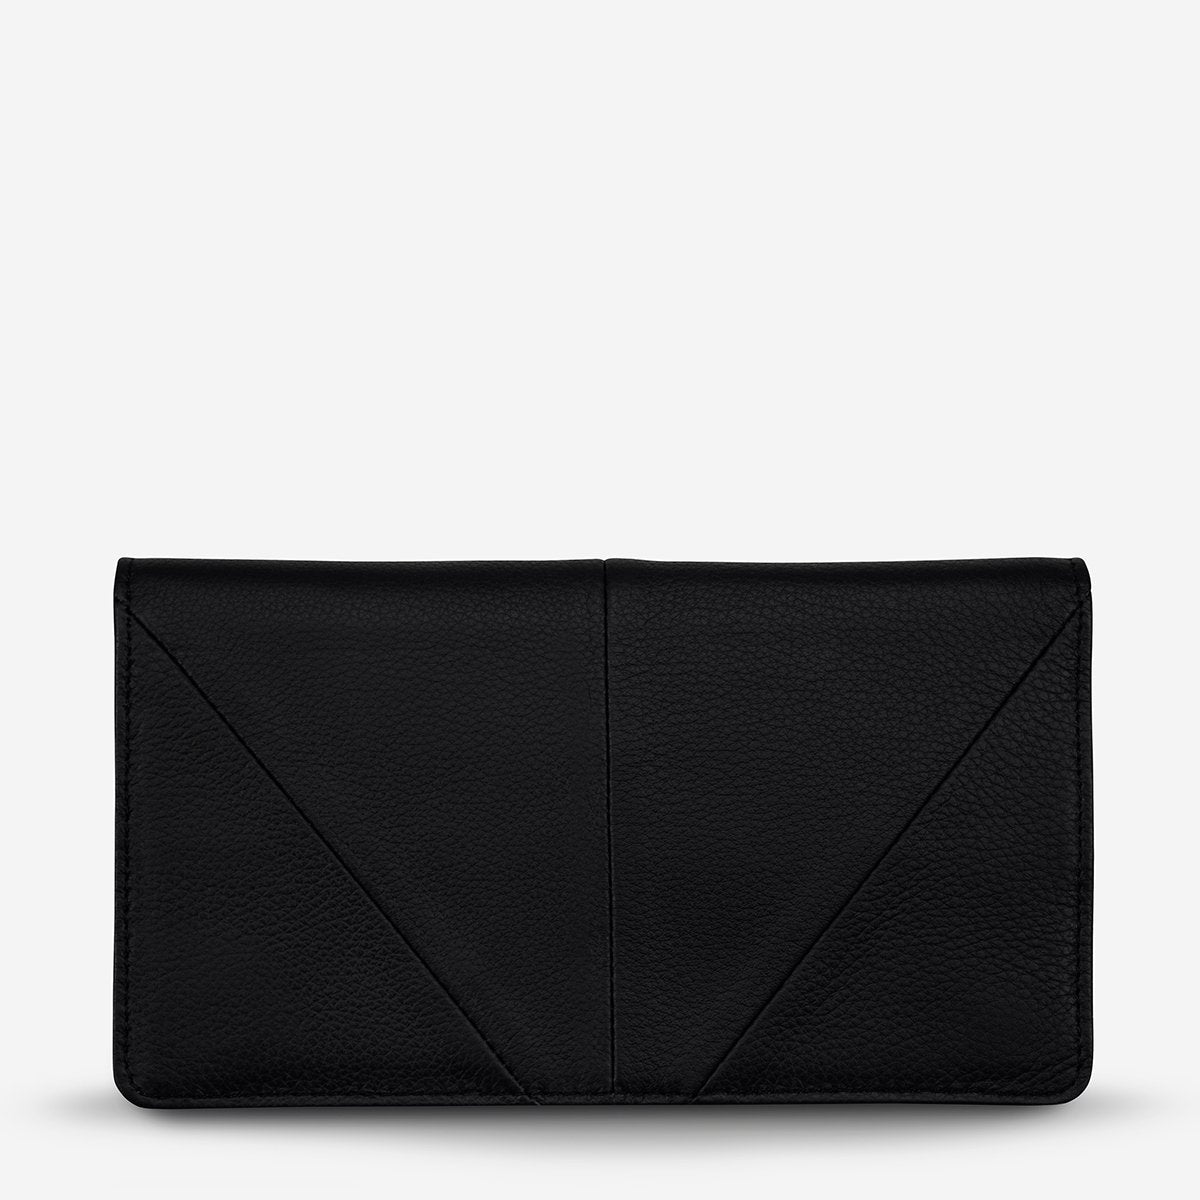 Triple Threat Wallet Black